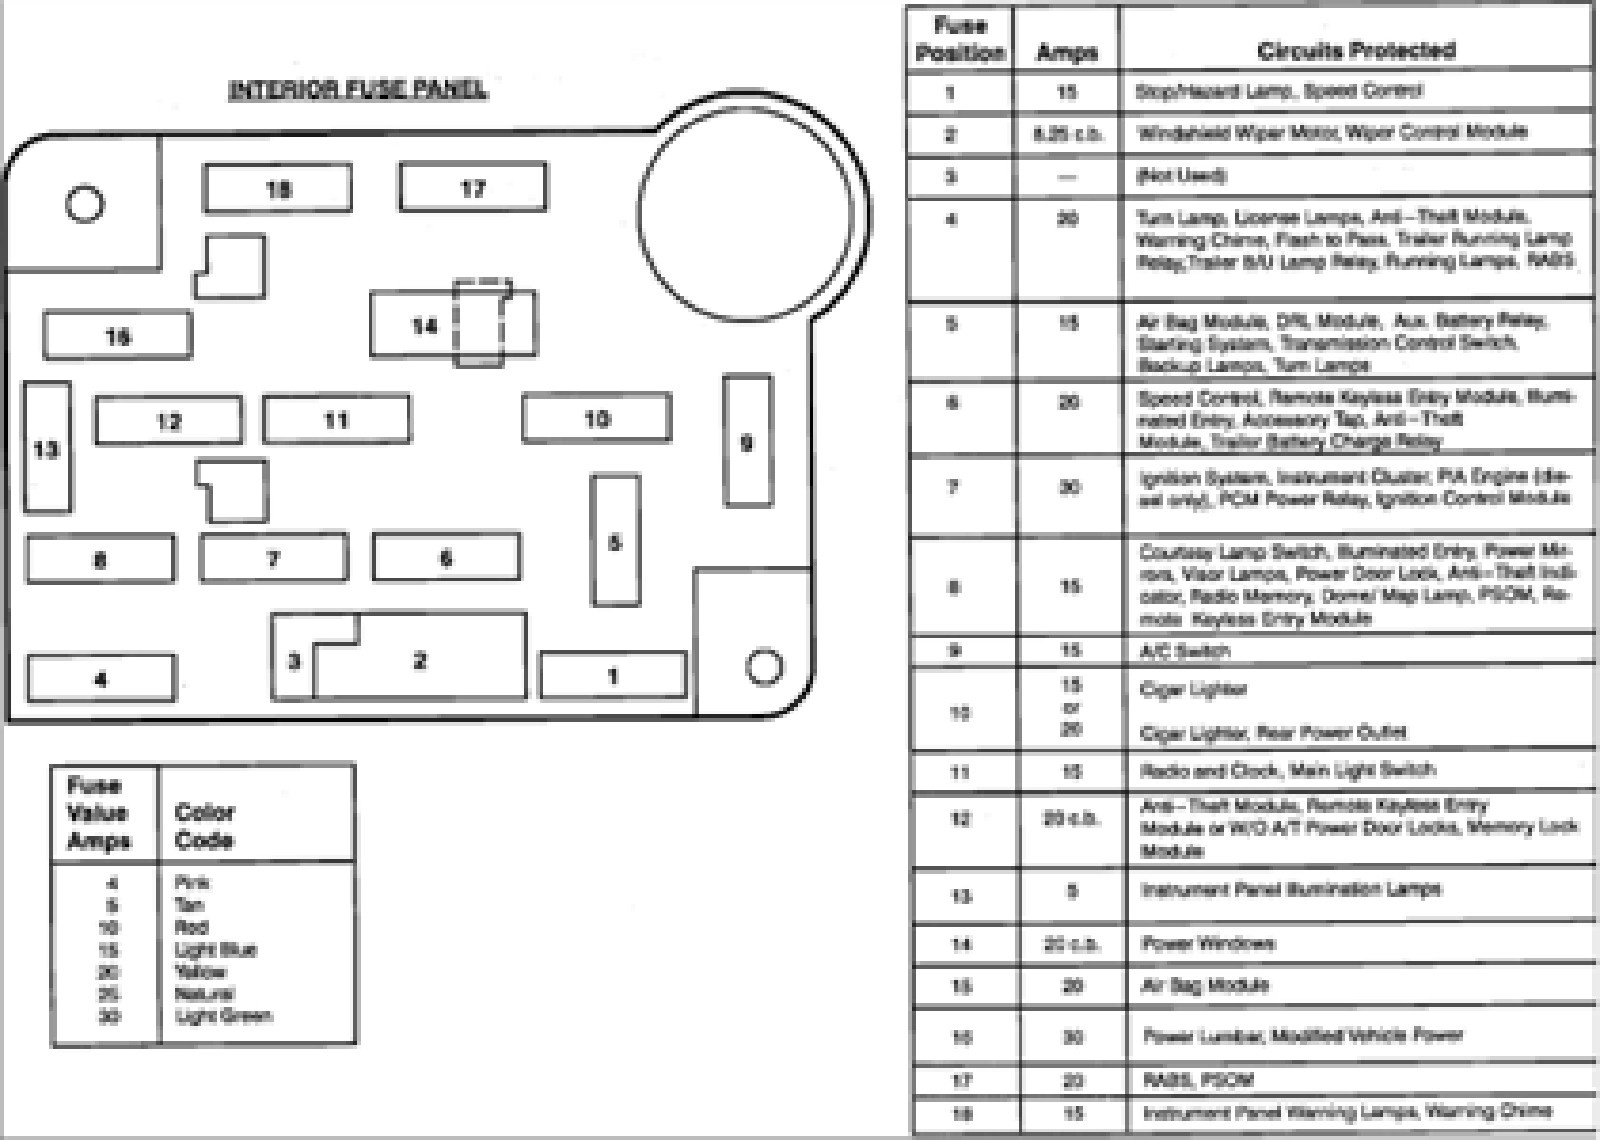 2006 Ford Econoline E250 Fuse Box Diagram Archive Of Automotive Kenwood Kvt 696 Wiring E150 Van Free Download Simple Rh David Huggett Co Uk